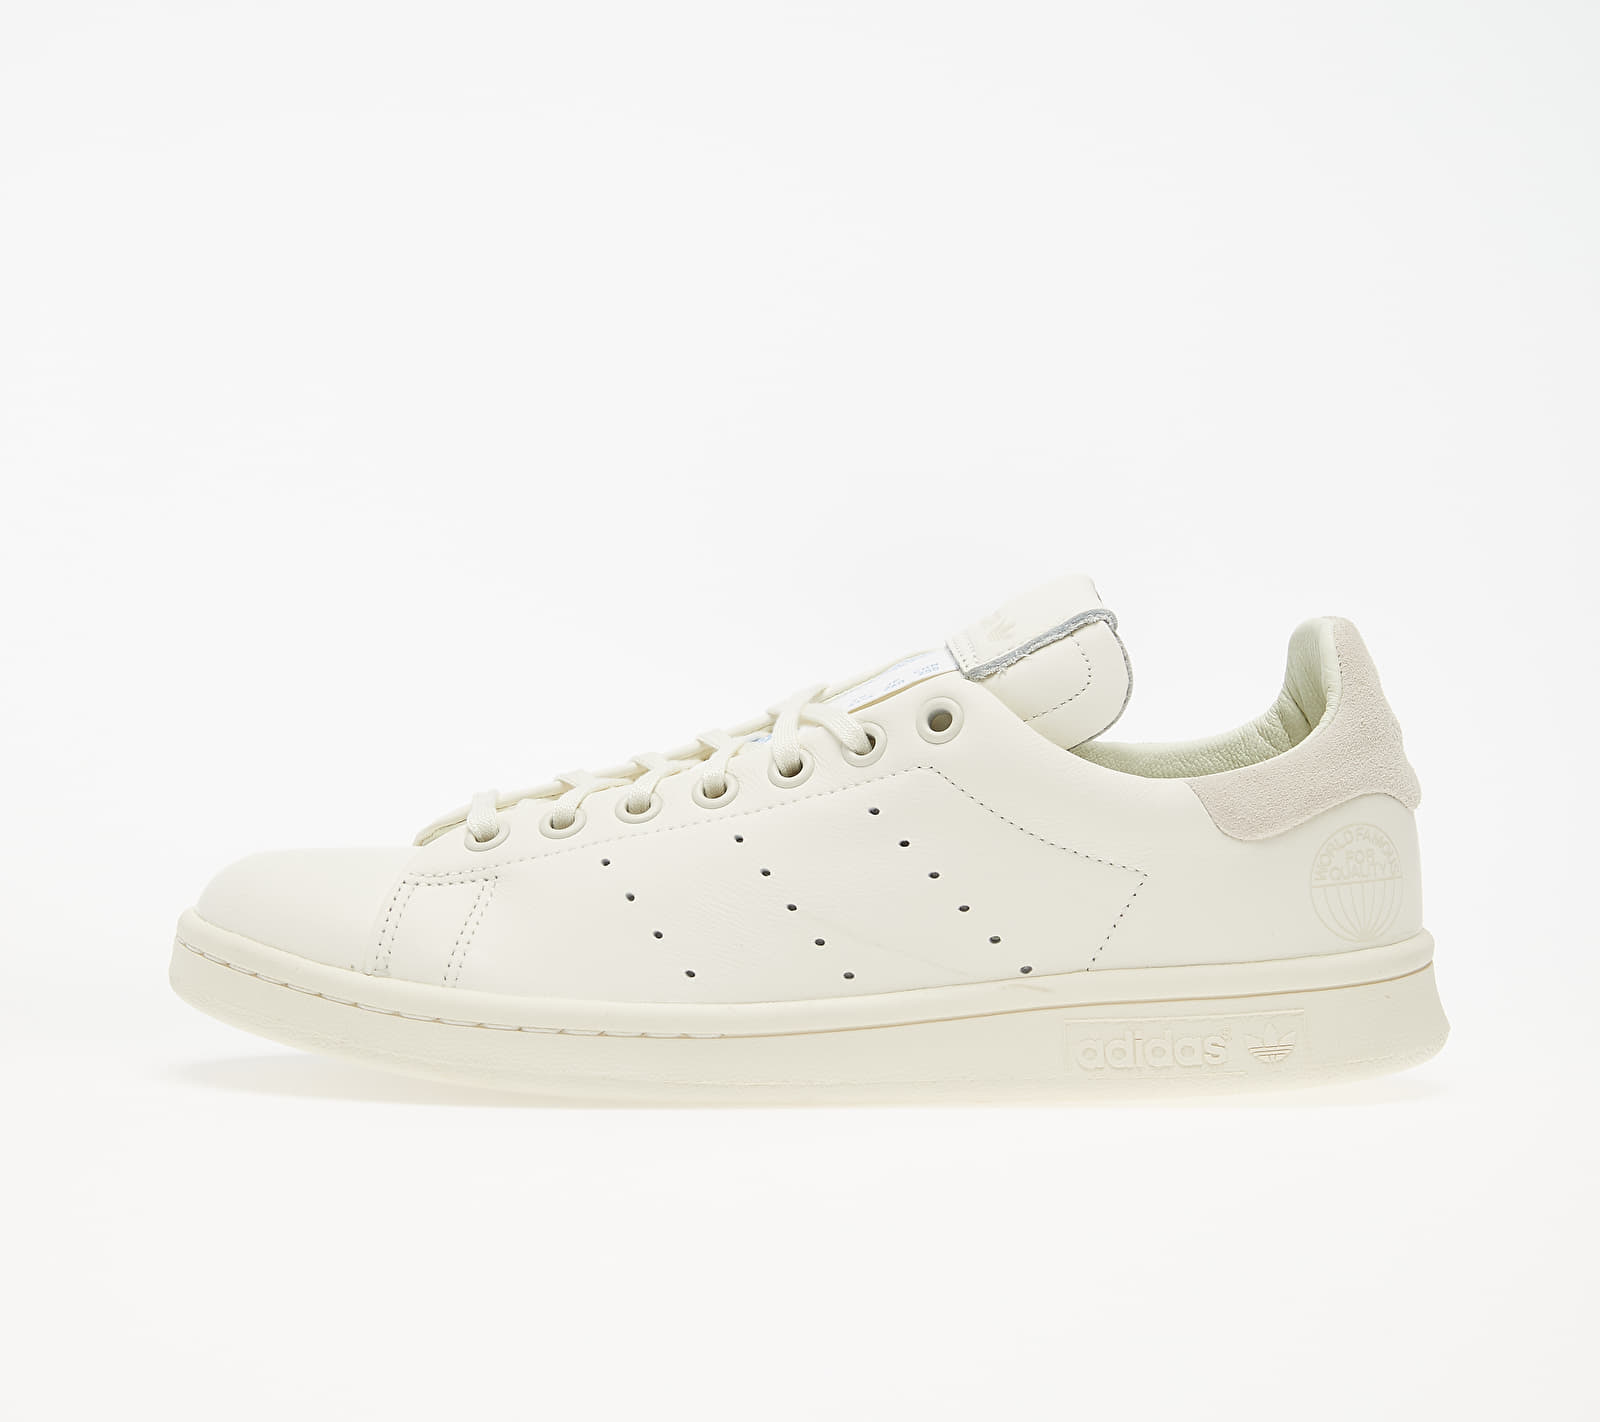 adidas Stan Smith Recon Off White/ Off White/ Off White EUR 45 1/3